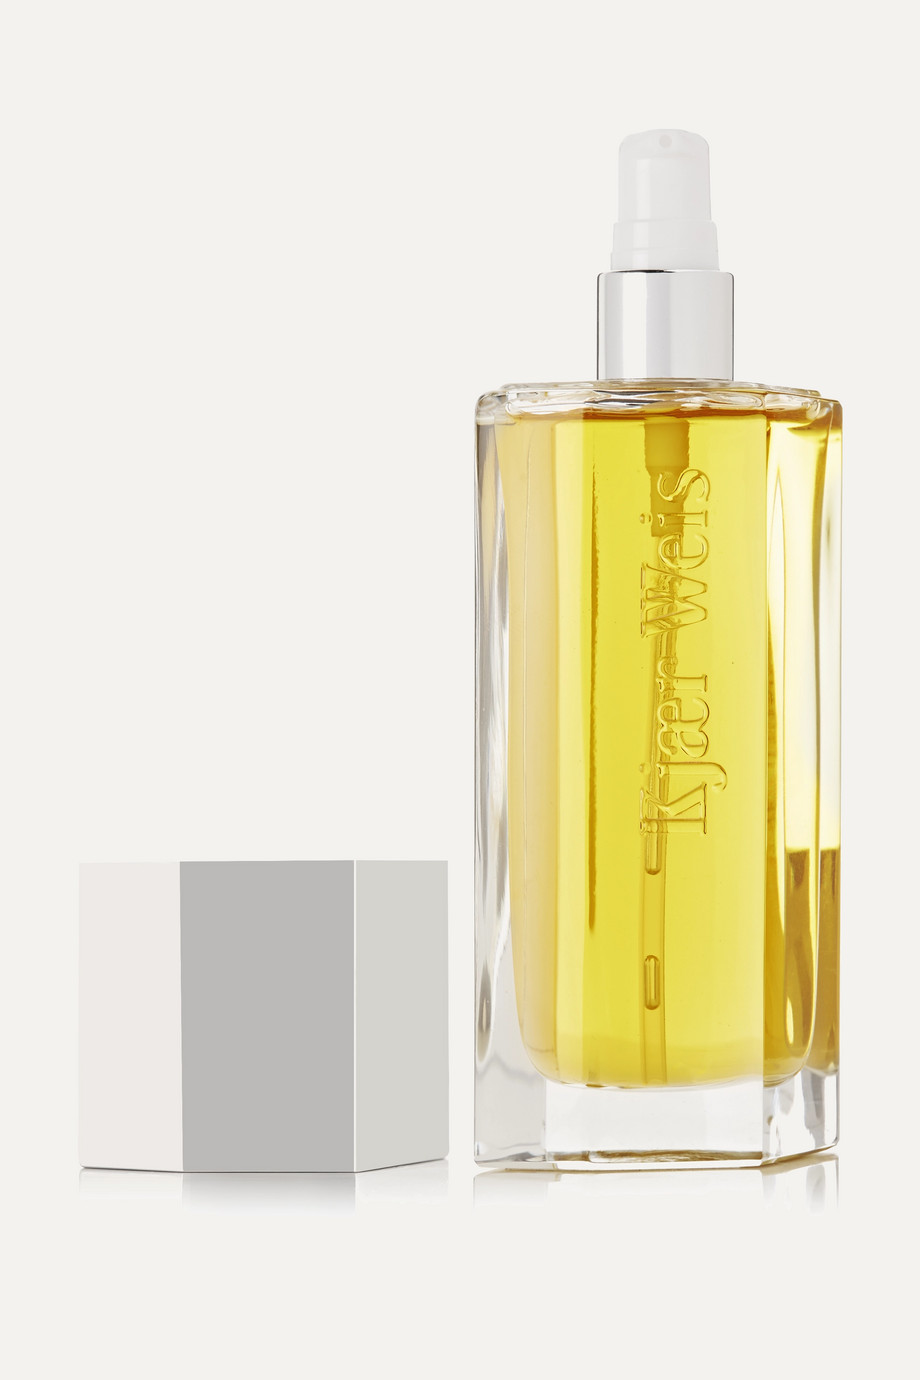 Kjaer Weis Body Oil, 100ml